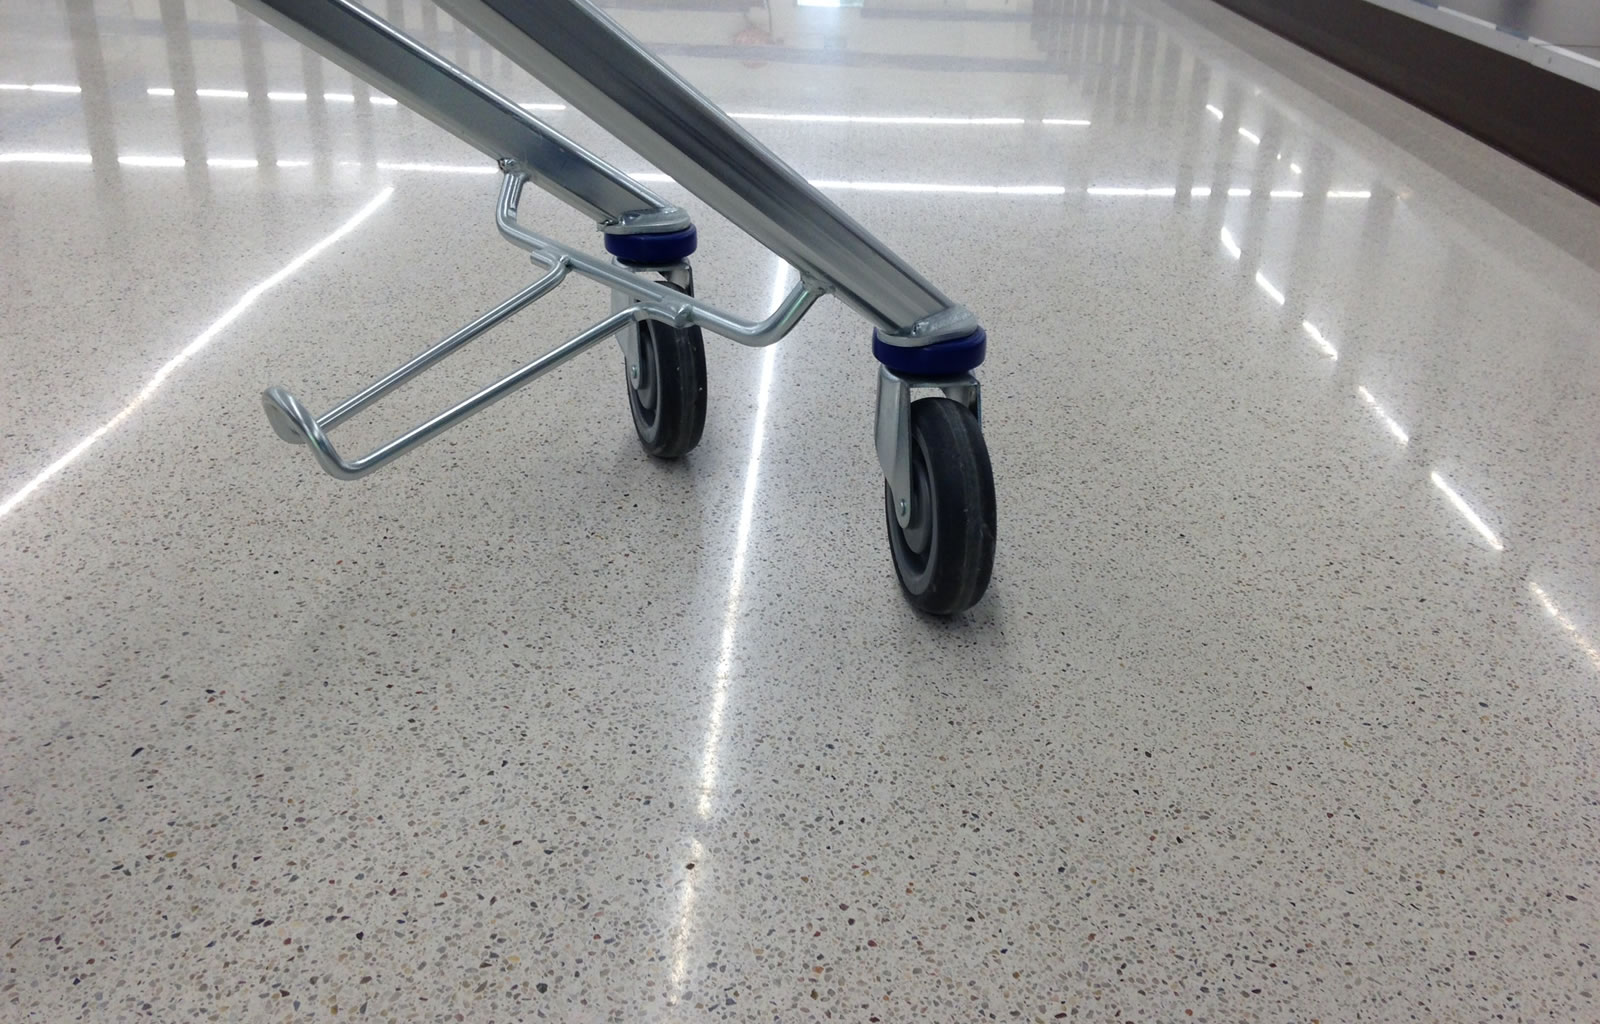 Lidl supermarket in Warszawa - Jointless Terrazzo floor